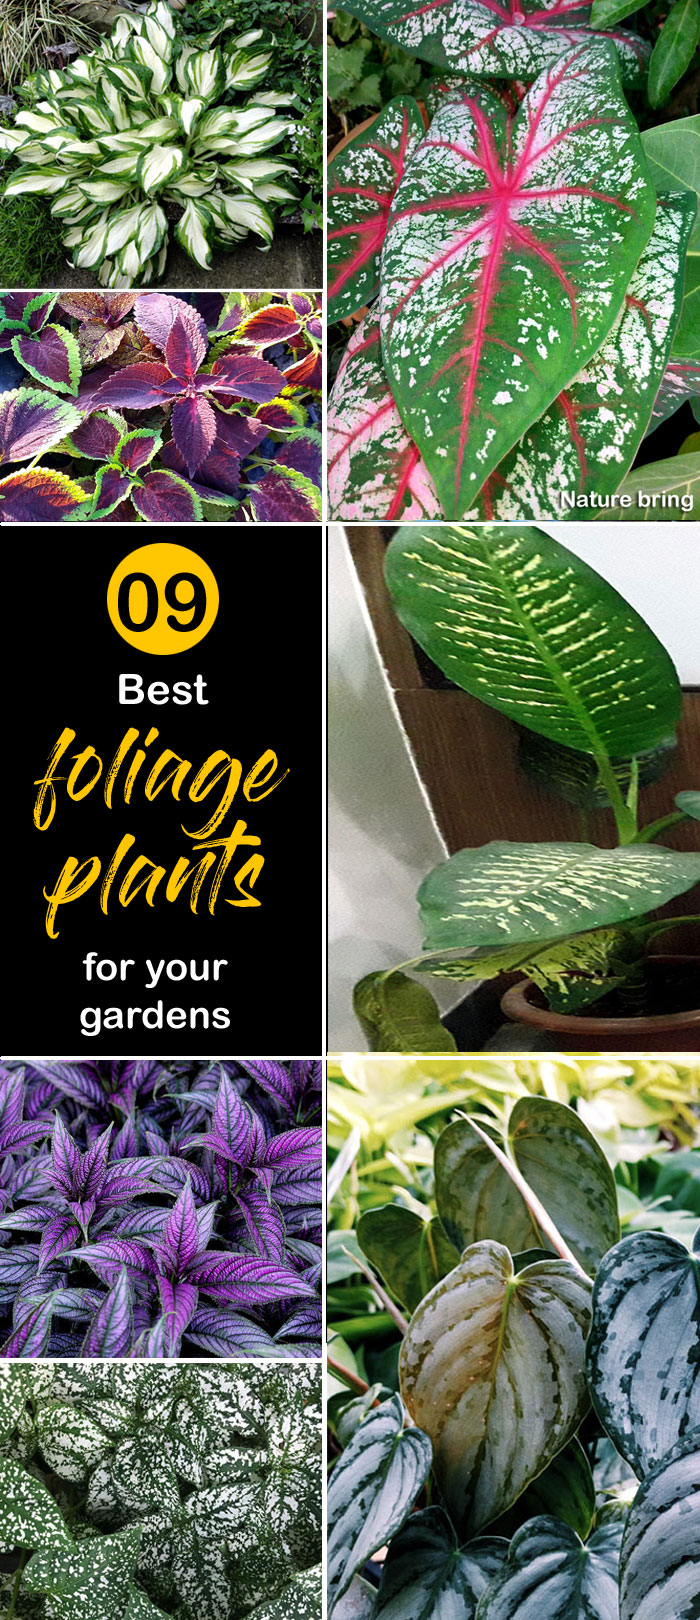 Best foliage plants| leaf plants for containers | foliage plants for containers